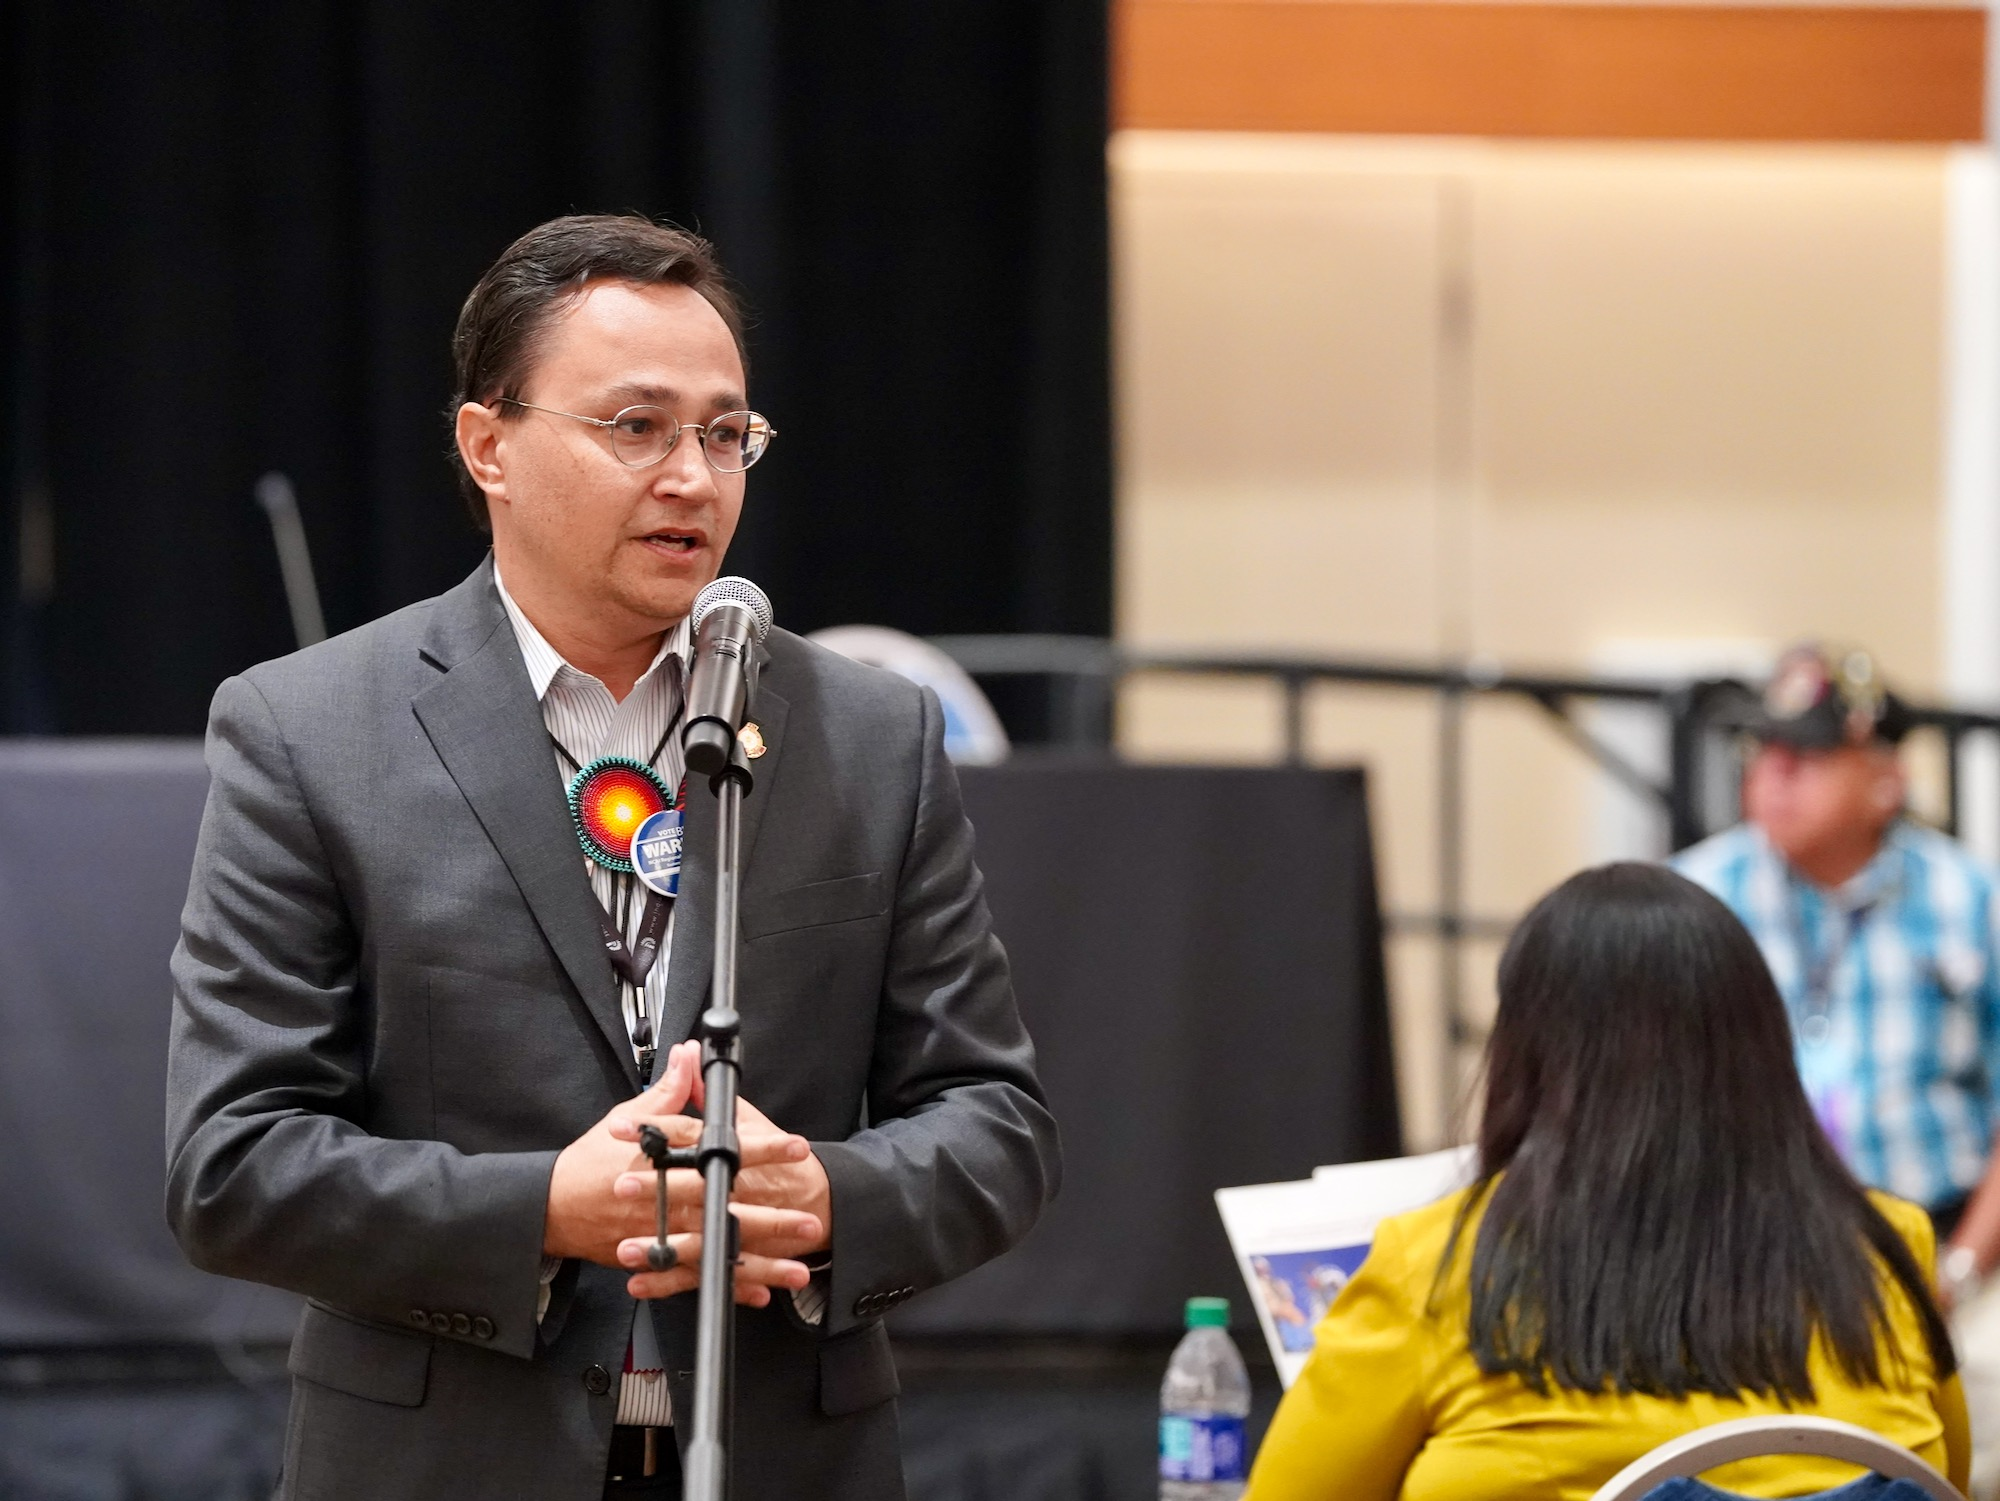 Chuck Hoskin: Cherokee Nation gives back to our people and our communities